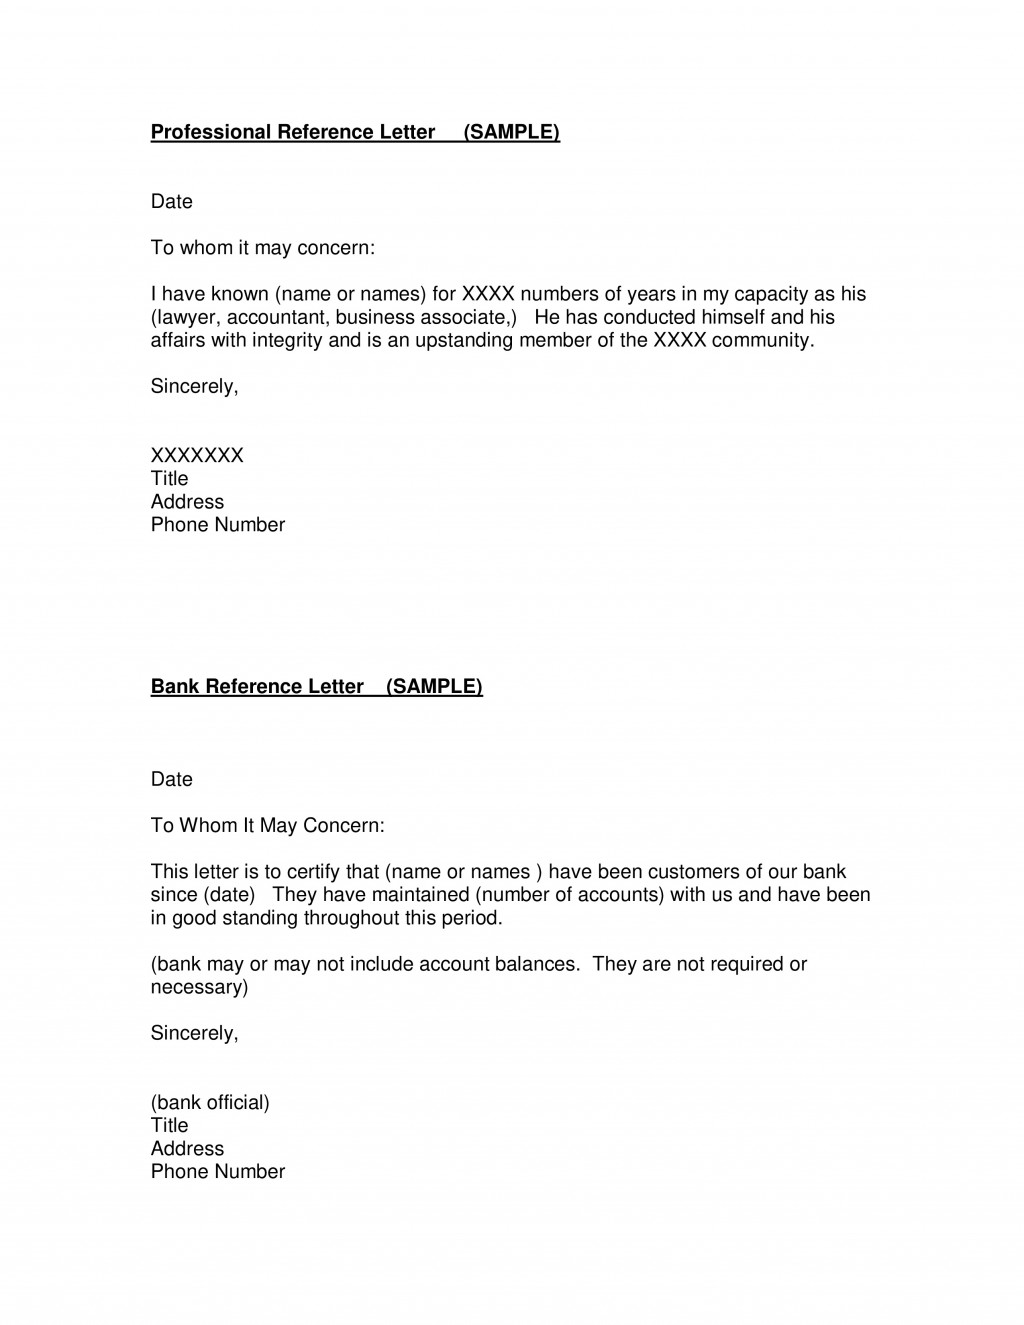 005 Stunning Professional Reference Letter Template Design  Nursing Free CharacterLarge